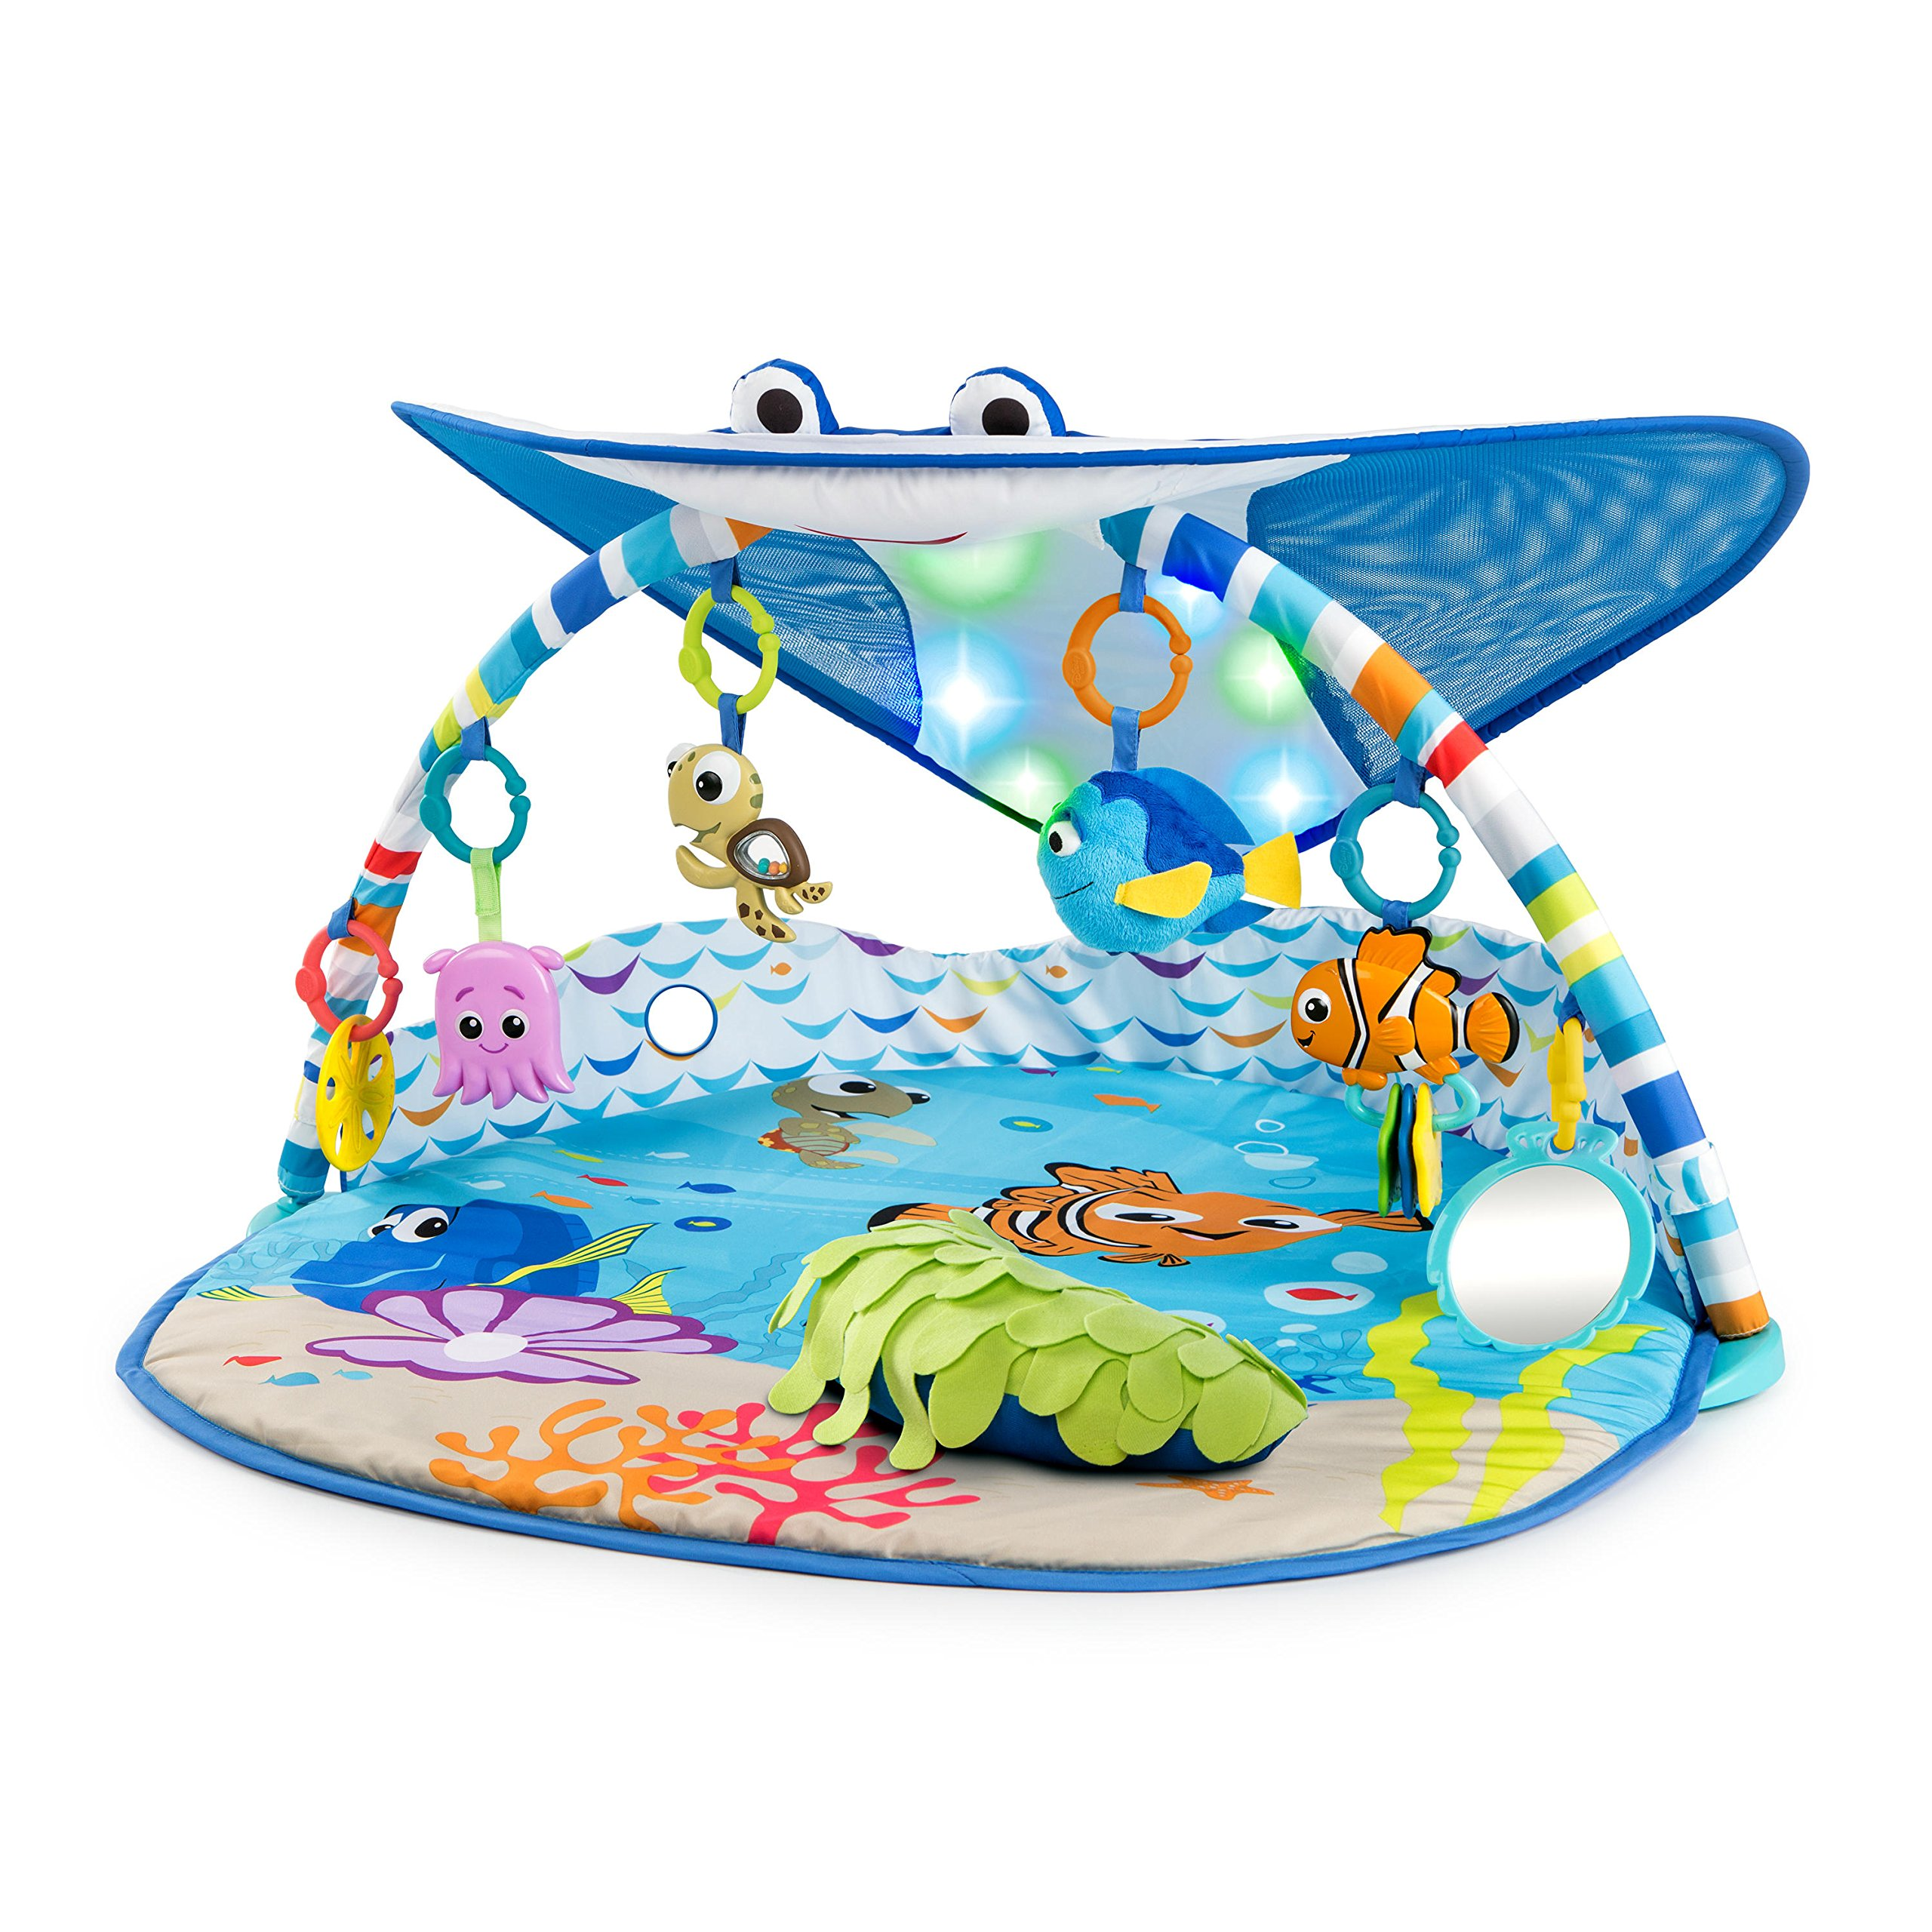 32b5de005c6d Amazon.com   Disney Baby Finding Nemo Sea of Activities Jumper   Baby